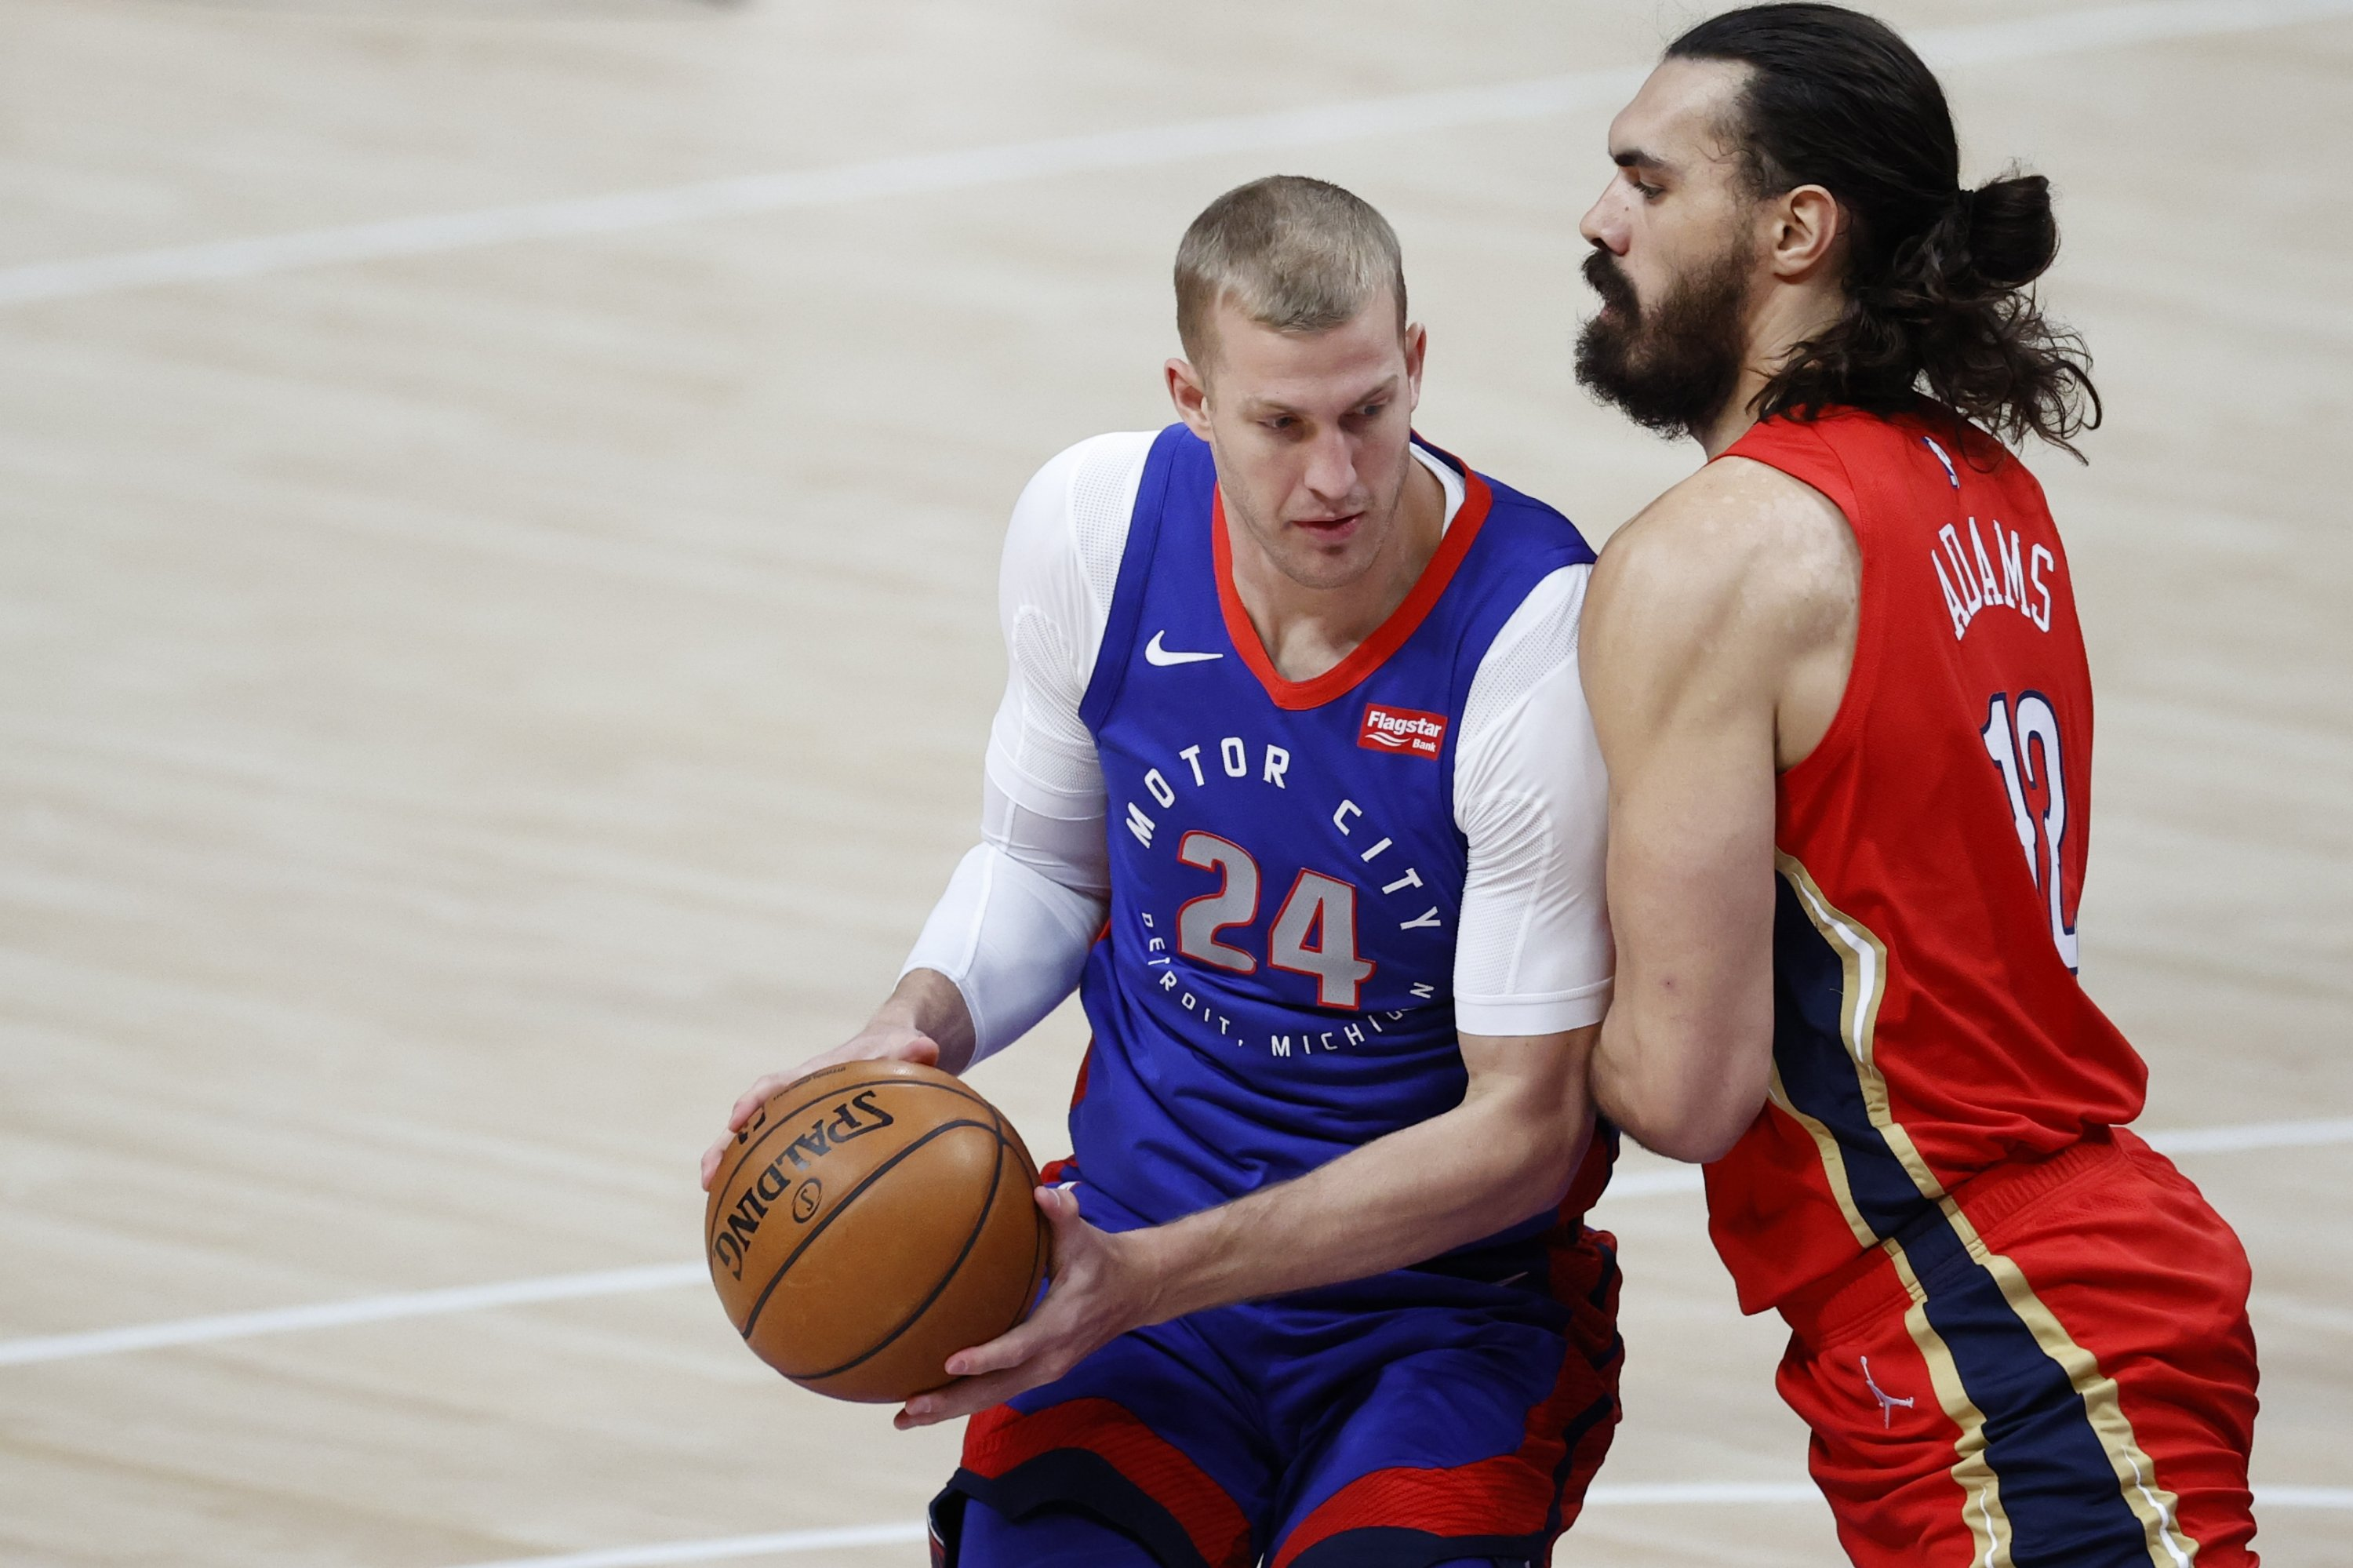 Detroit Pistons center Mason Plumlee (L) is defended by New Orleans Pelicans center Steven Adams (R) in the first half at Little Caesars Arena, Detroit, Michigan, Feb 14, 2021. (Reuters Photo)